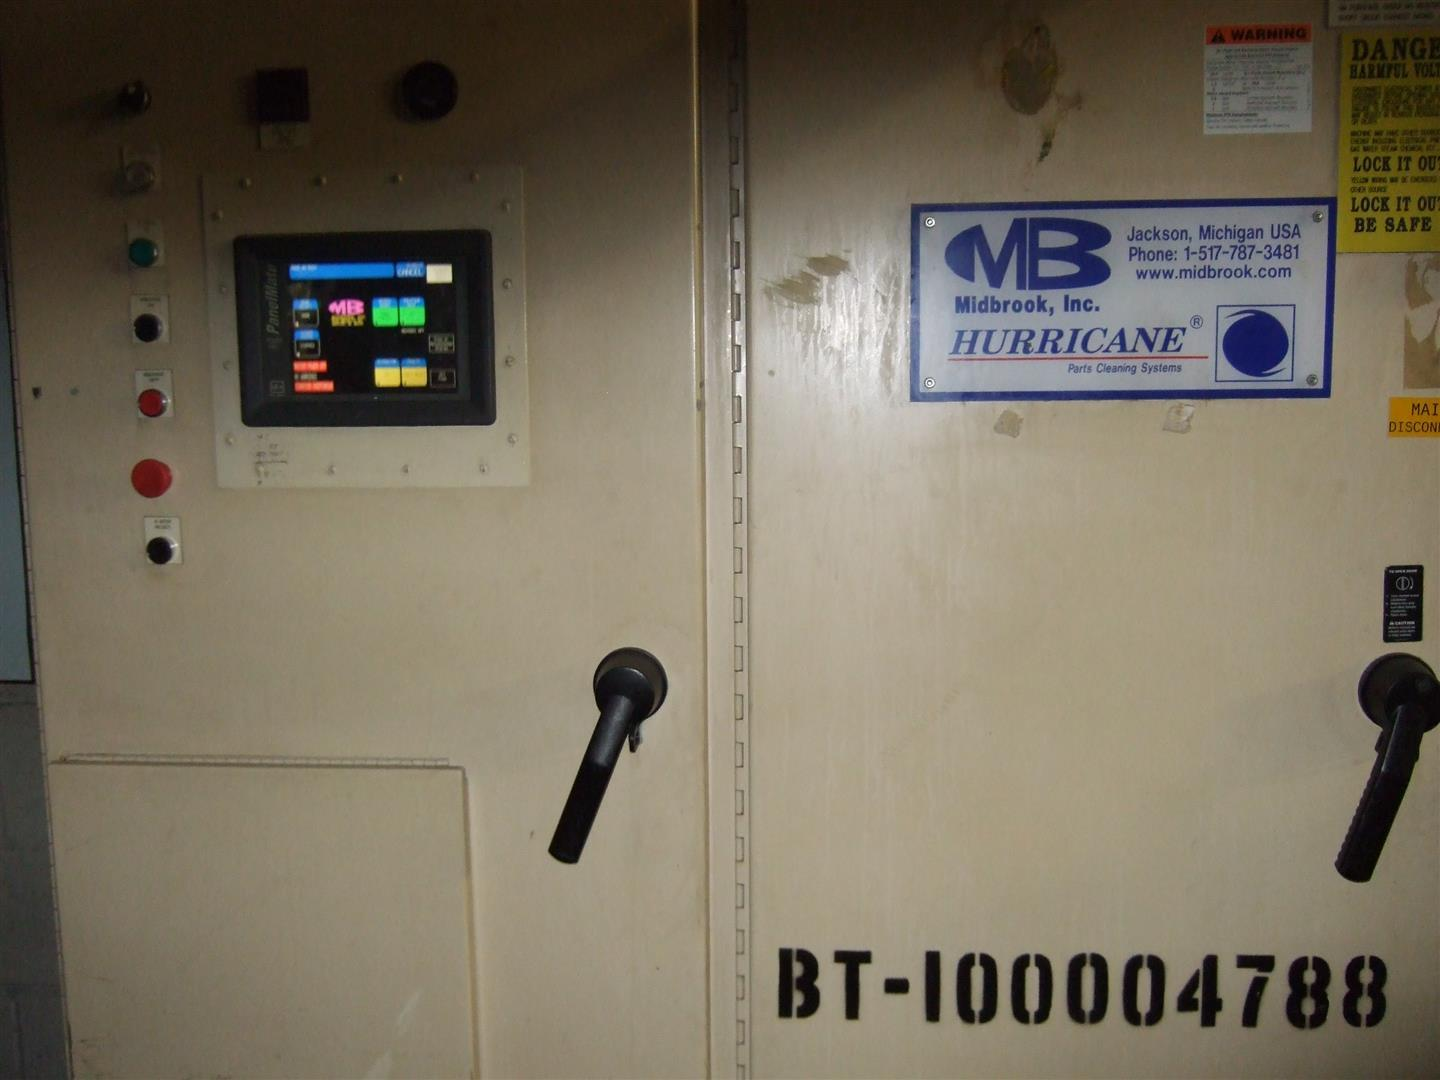 Midbrook Hurricane Parts Washer M100004788, Machine ID:6709